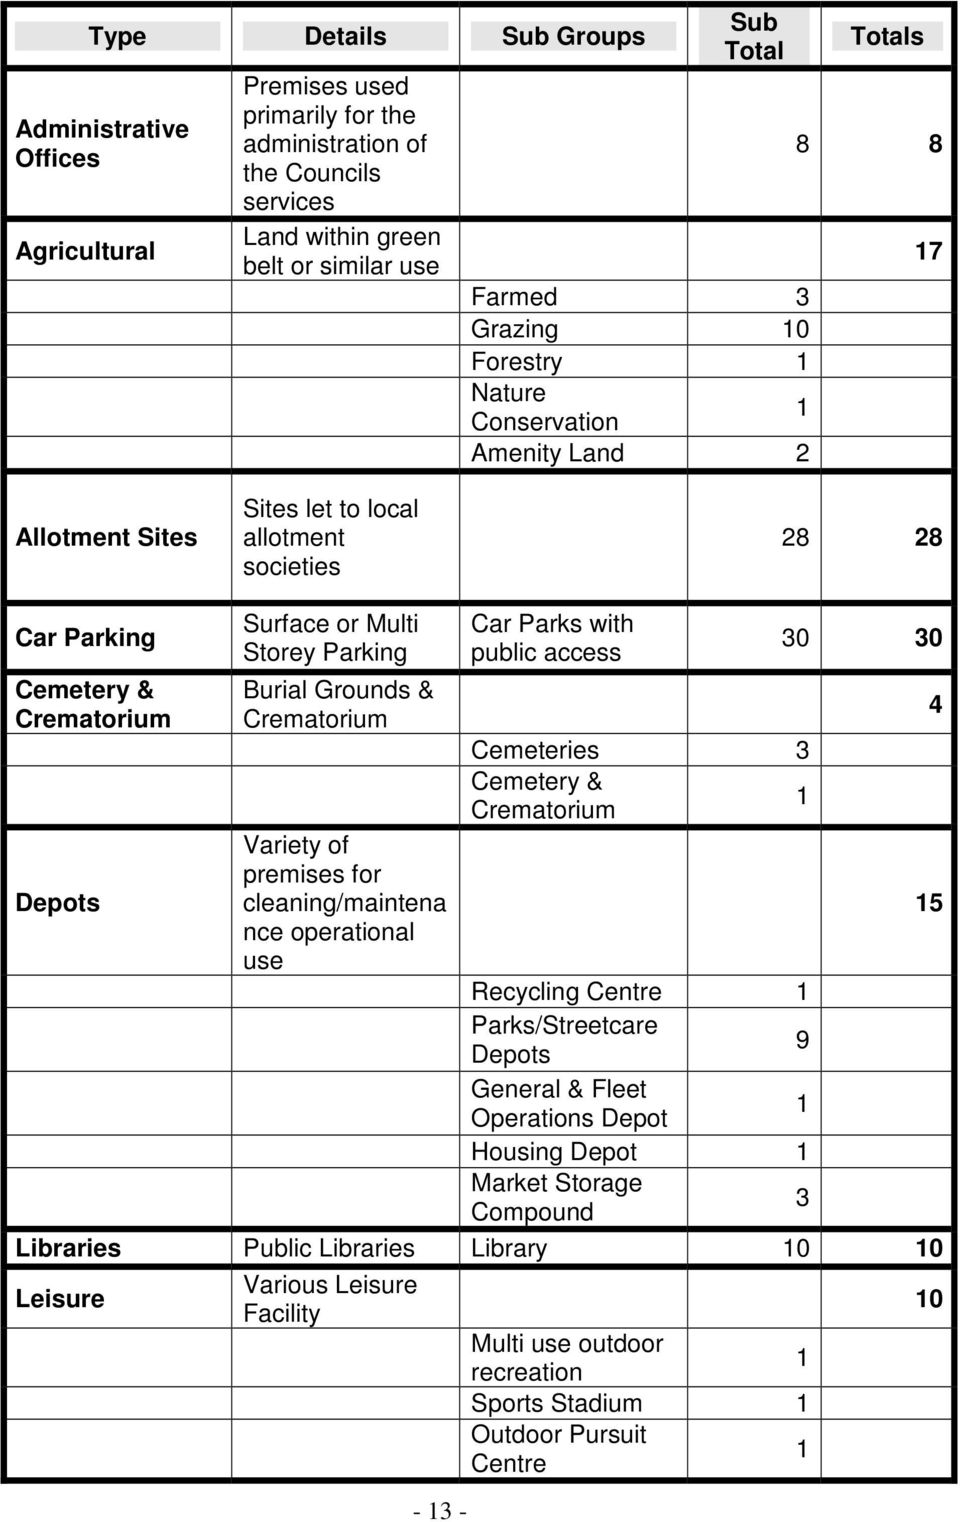 Grounds & Crematorium Car Parks with public access 30 30 Cemeteries 3 Cemetery & Crematorium 1 Depots Variety of premises for cleaning/maintena nce operational use 15 Recycling Centre 1